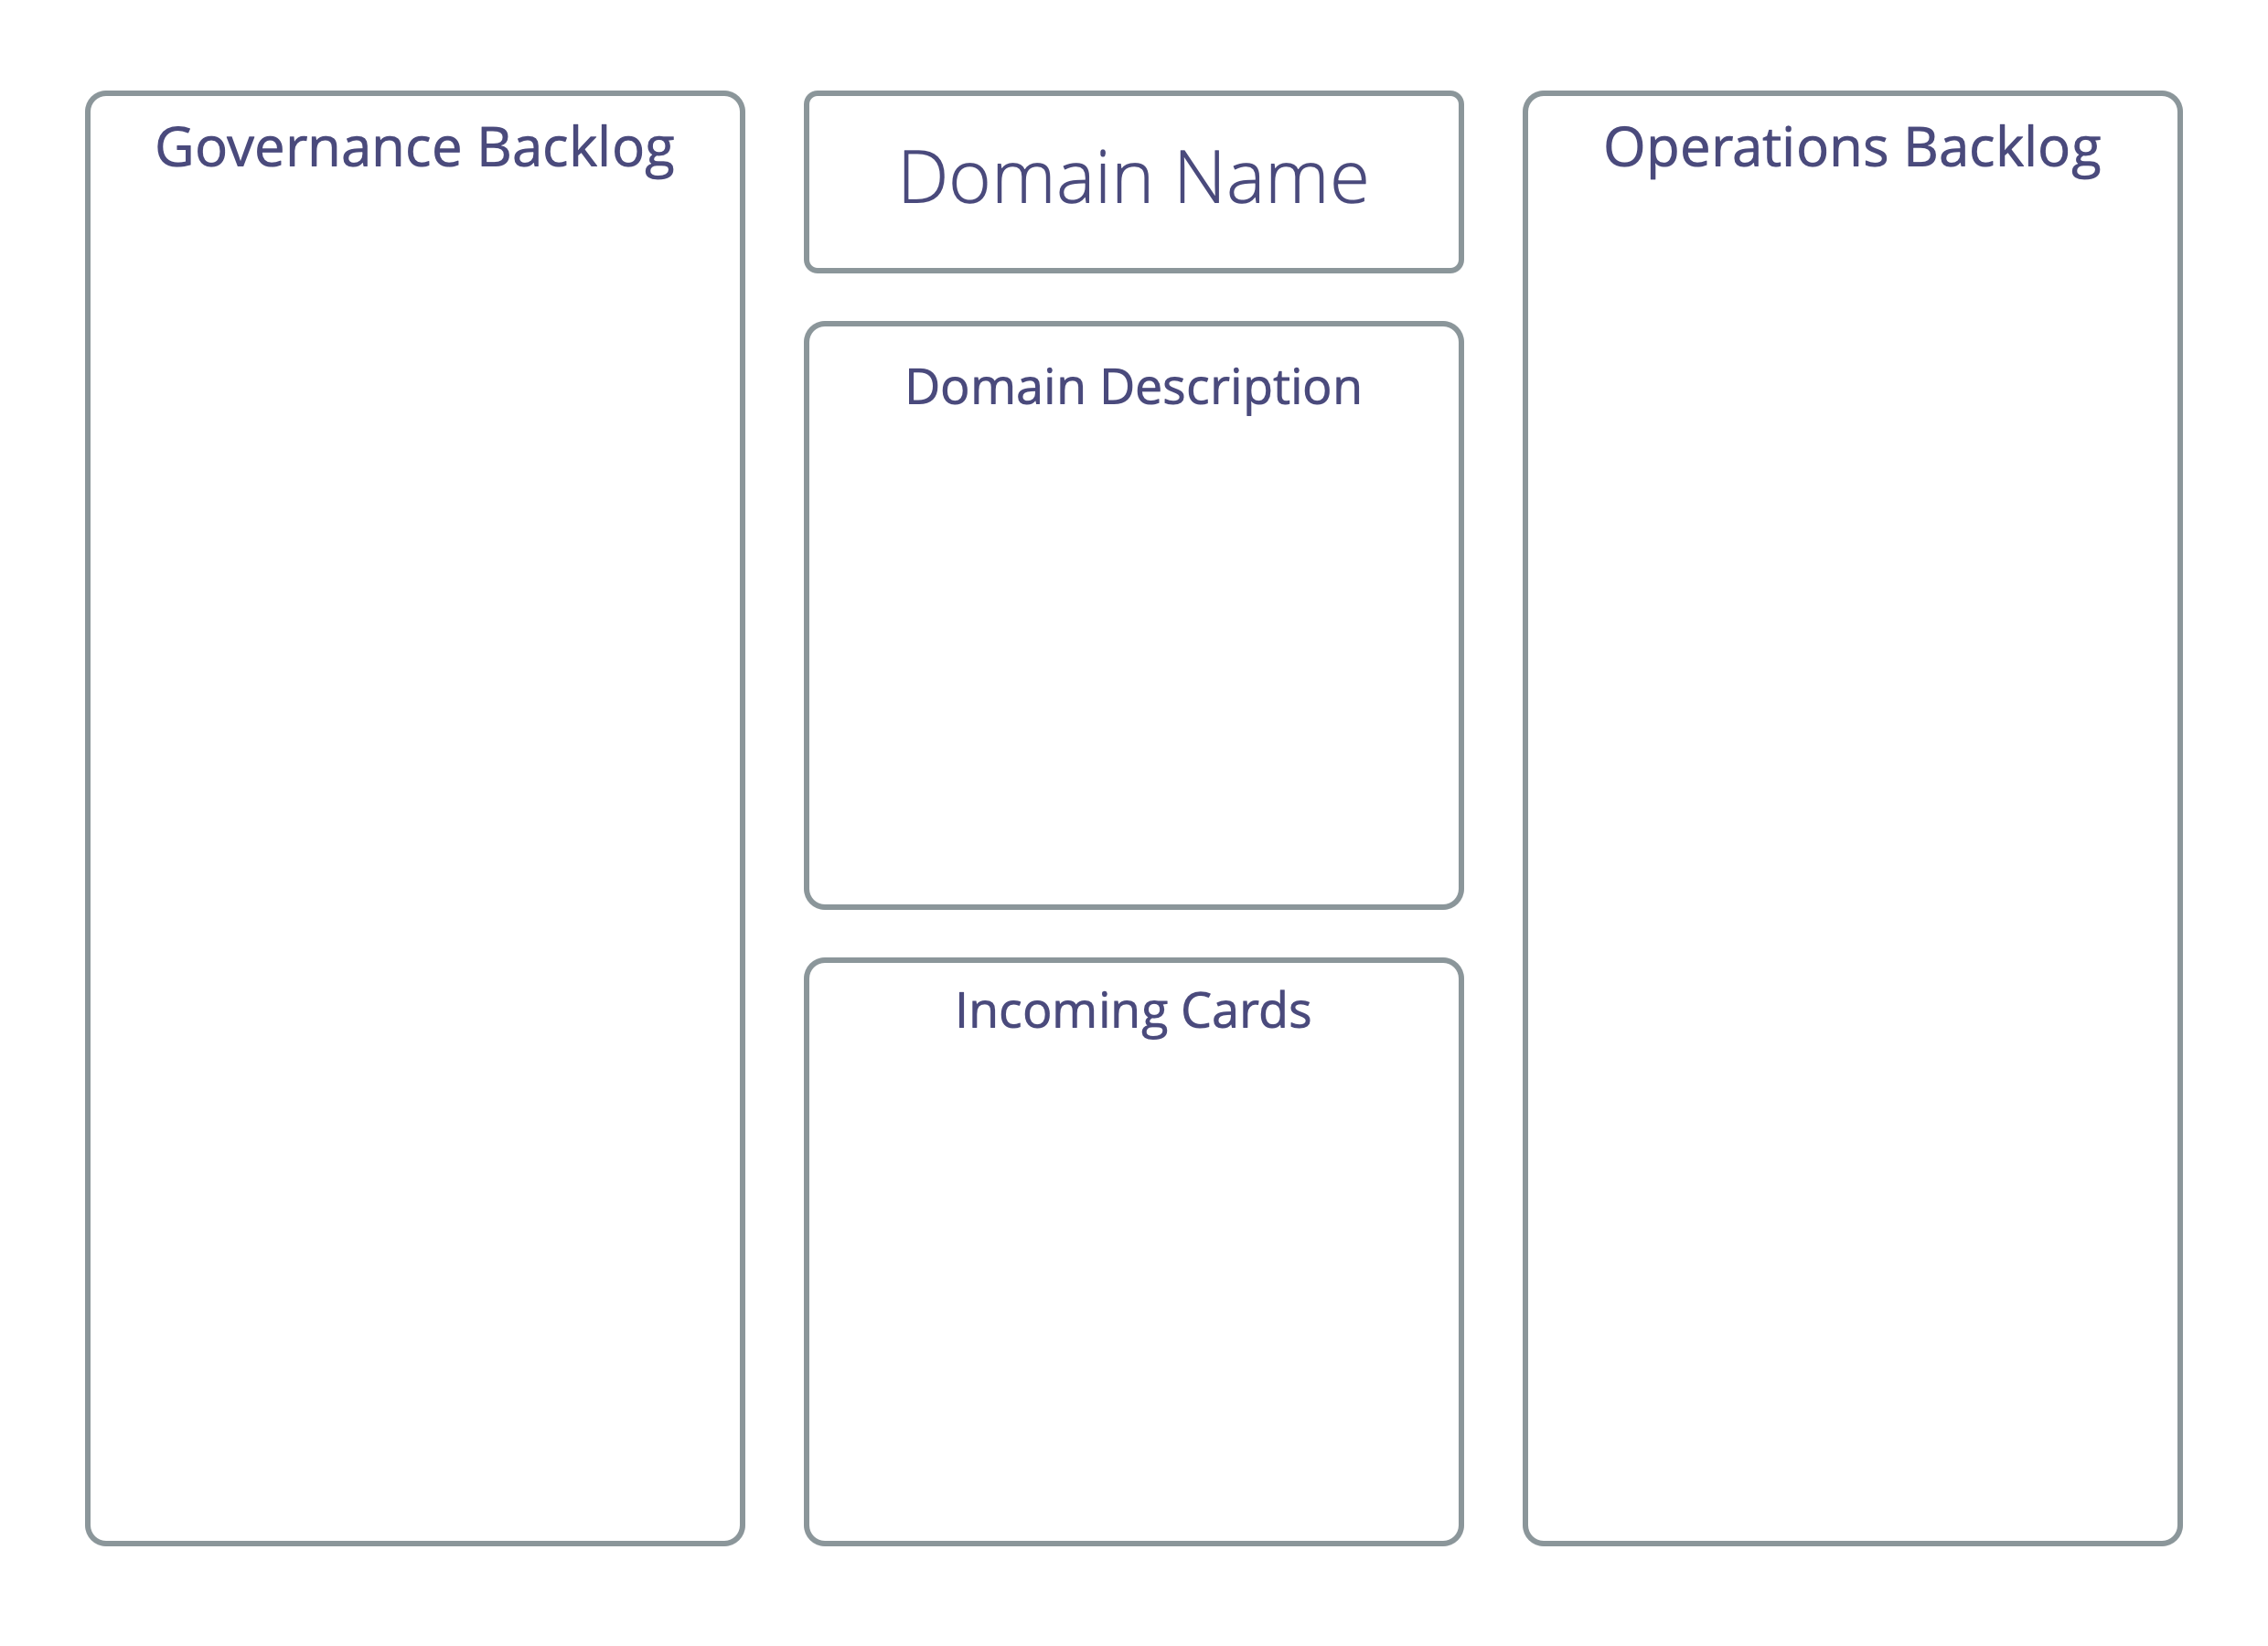 Driver Mapping: A template for domains